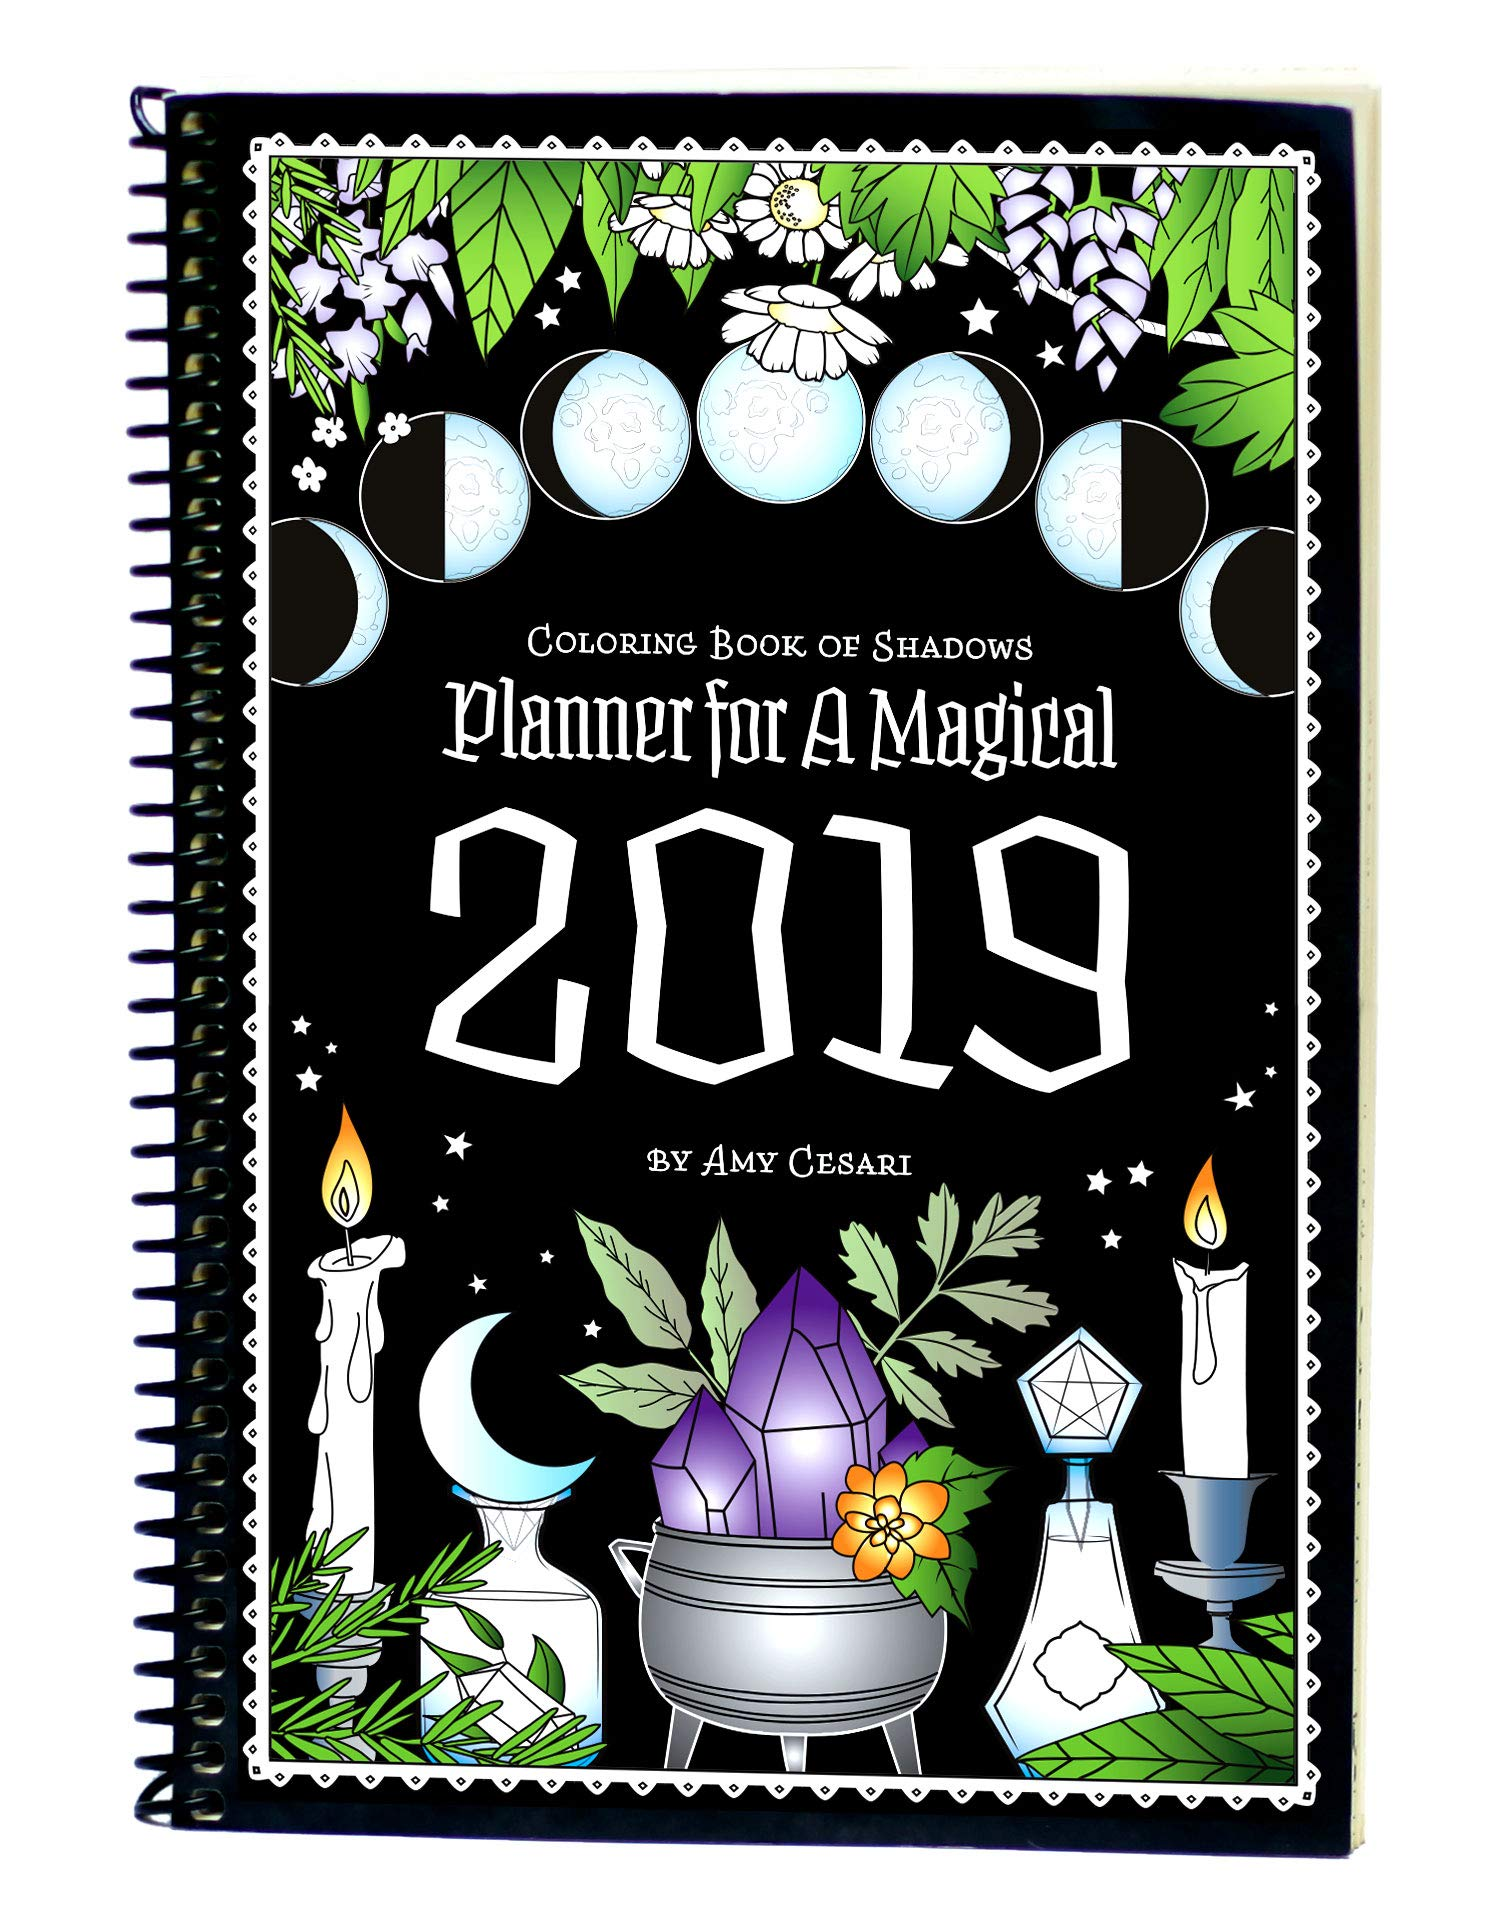 1020+ Coloring Book Of Shadows Planner Picture HD